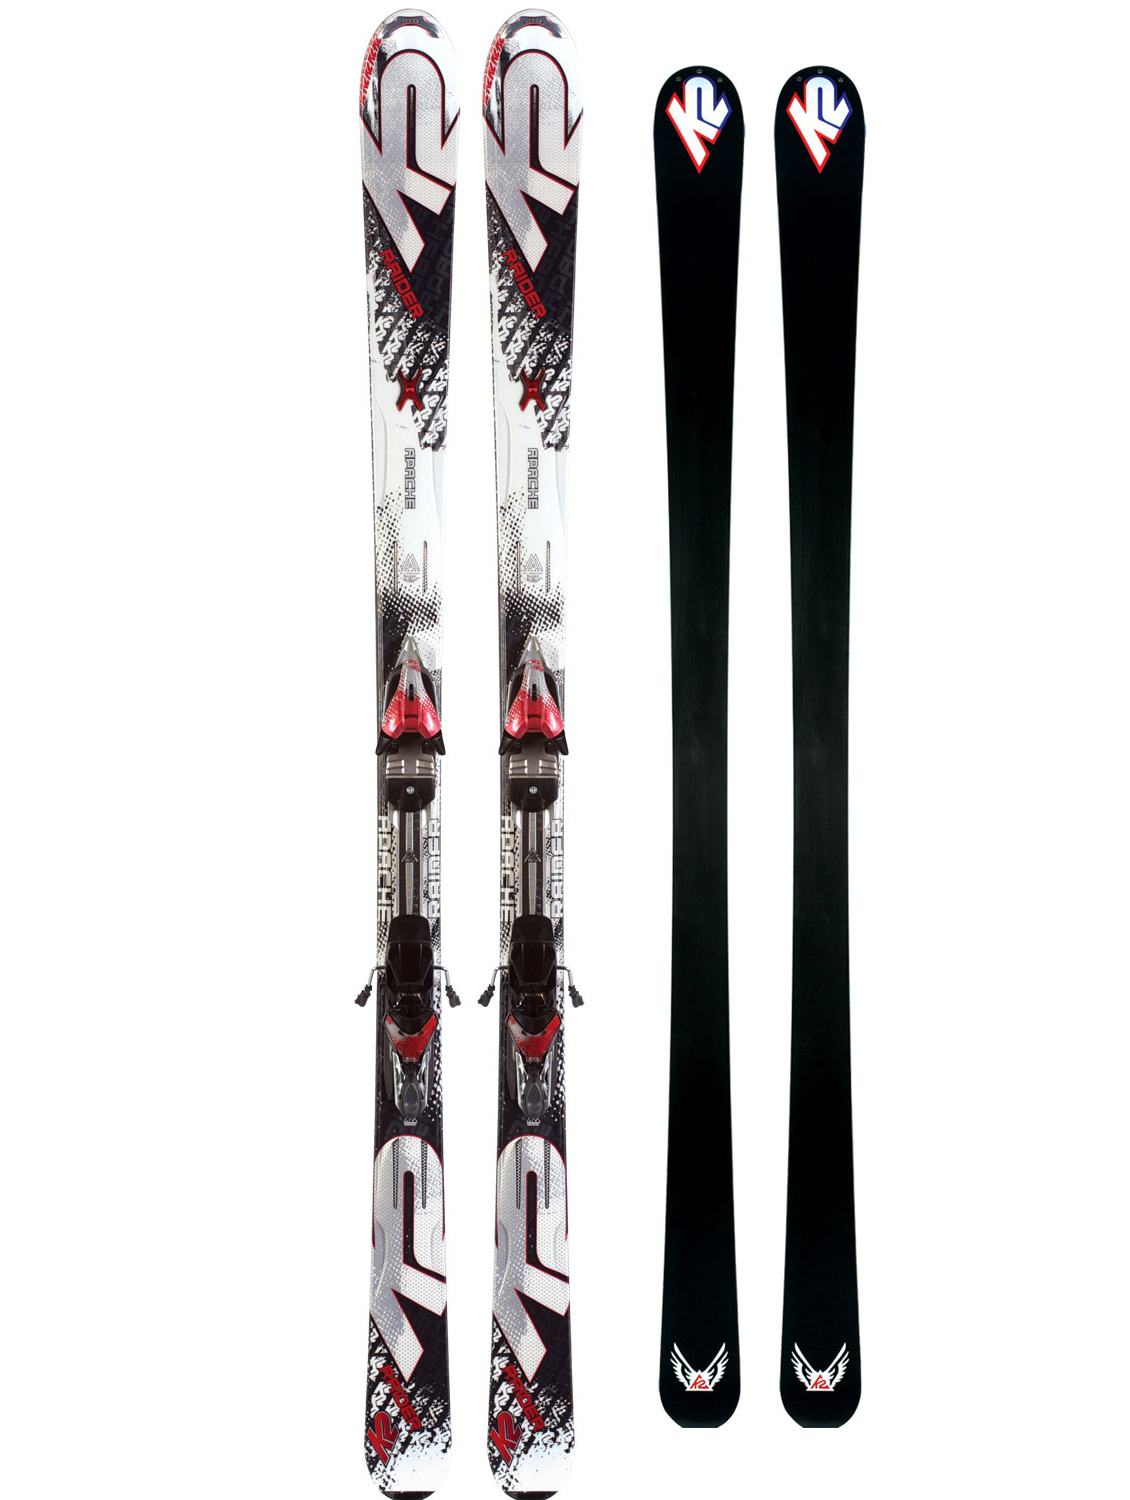 Ski Athletic skiers seeking performance at an exceptional value are going to love the Raider. This versatile ski is built on the proven Recon chassis but in a torsion box construction for added versatility over the entire mountain.Key Features of the K2 Apache Raider Skis w/ Marker IBC 10.0 Bindings: MOD Monic MOD Technology Triaxial Braiding Performance: Ungroomed 50% Groomed 50% Radius: 18m@177 Construction: Torsion Box Cap Core: Fir/Aspen - $527.95